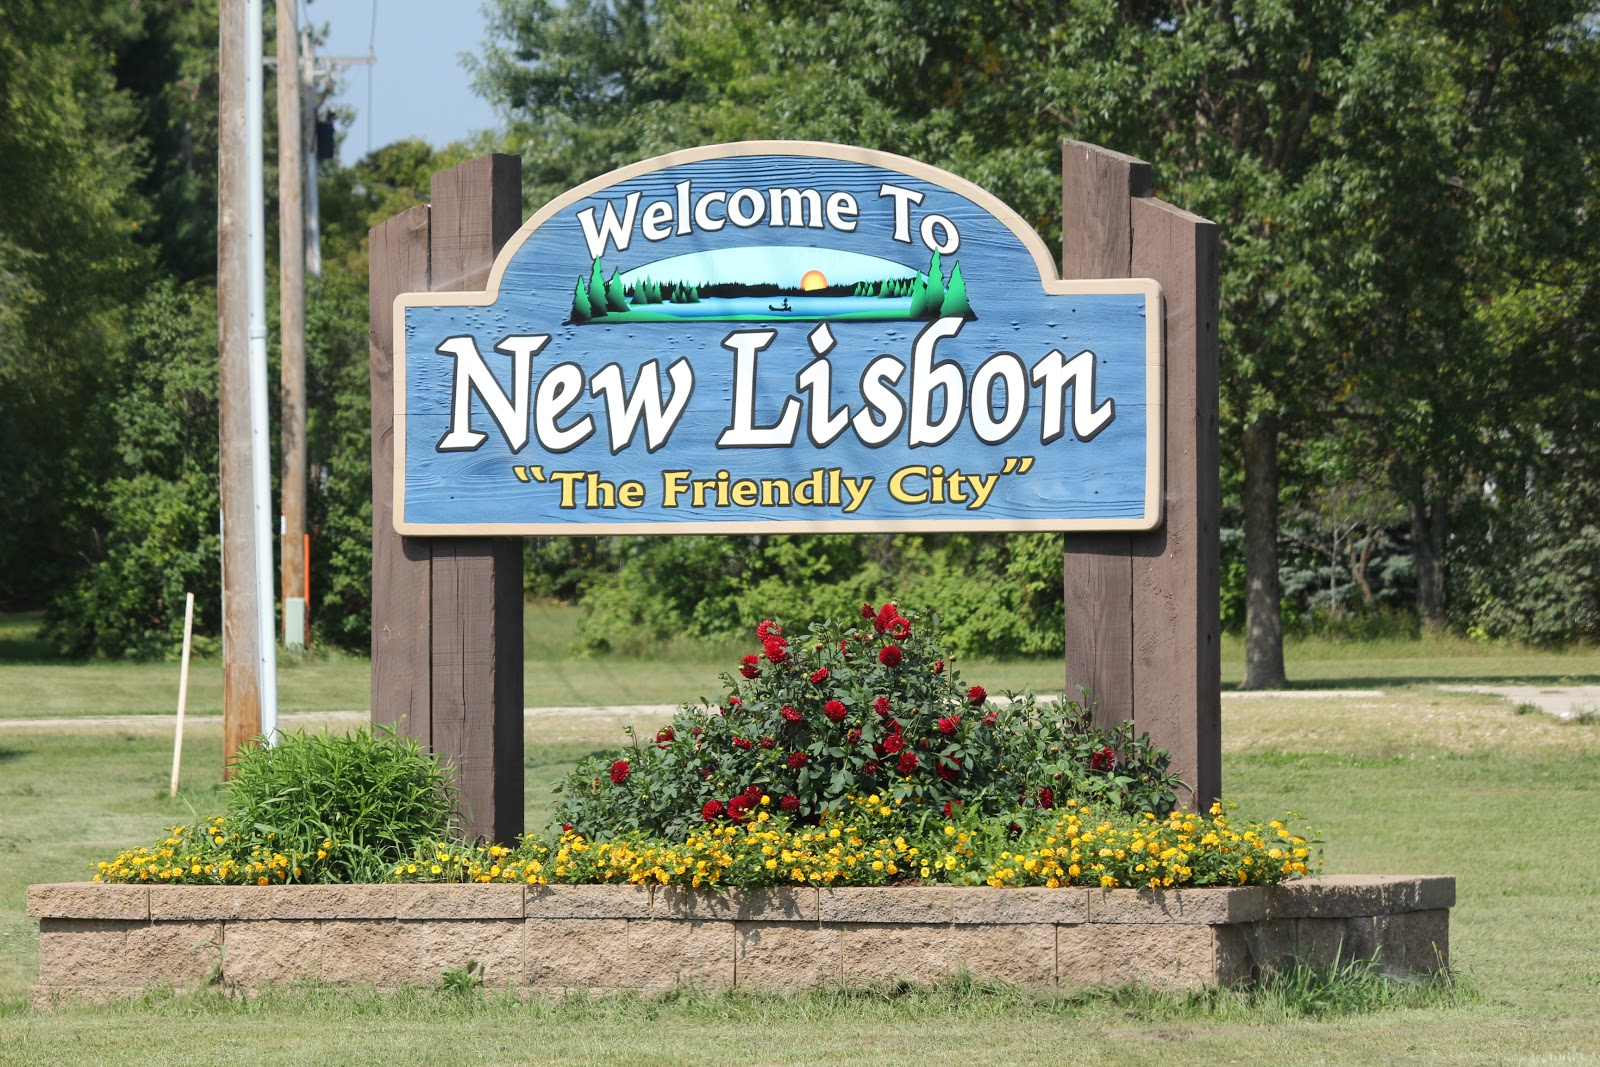 Personals in new lisbon wisconsin